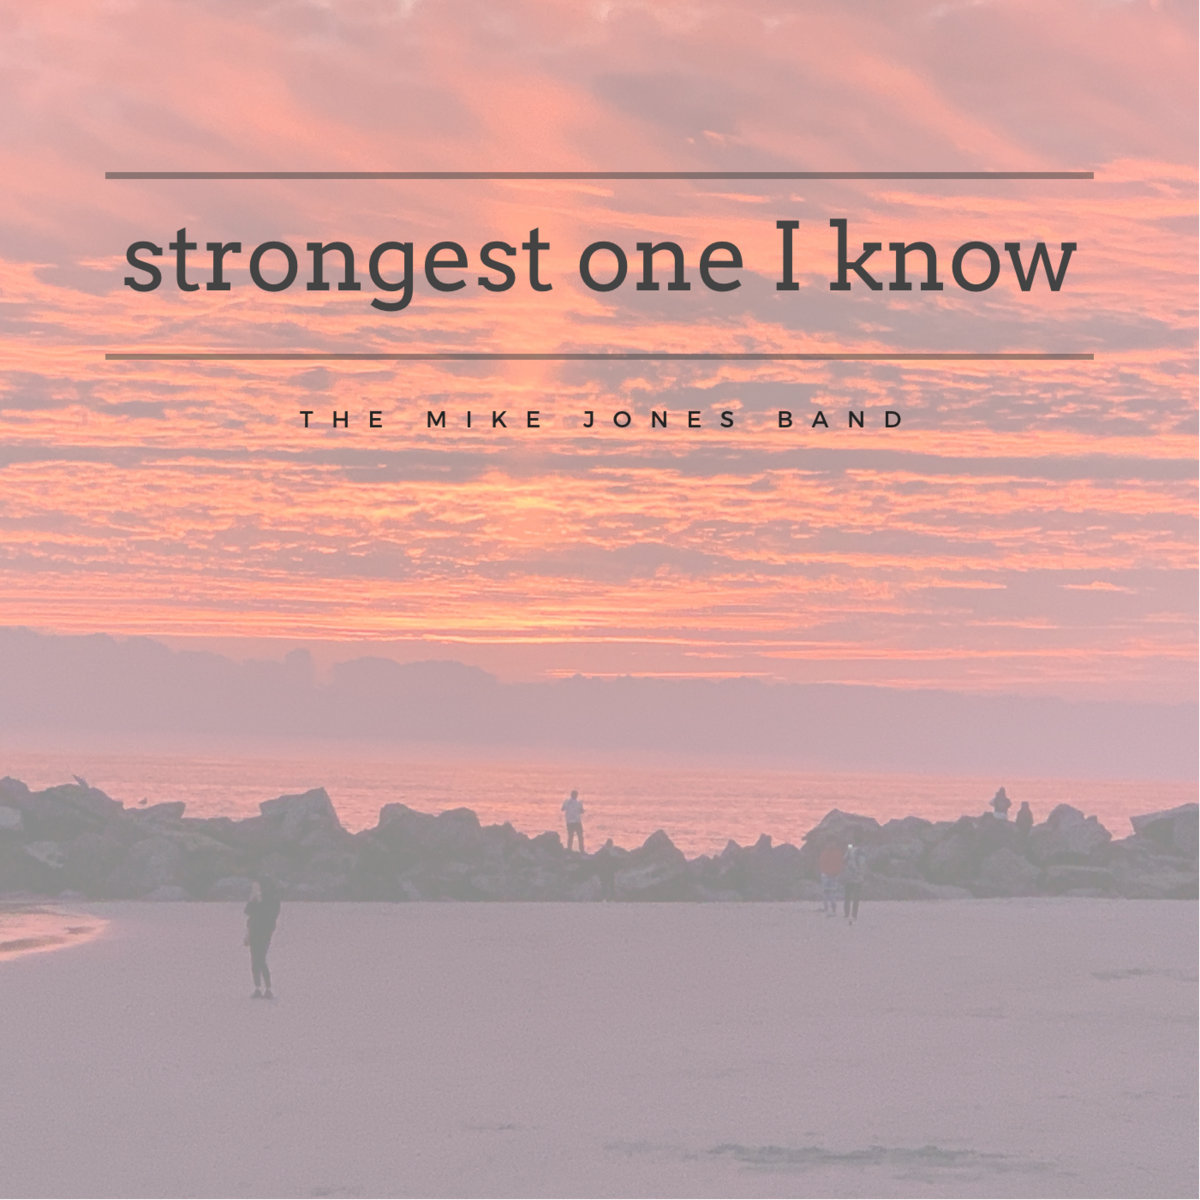 Strongest One I Know by The Mike Jones Band